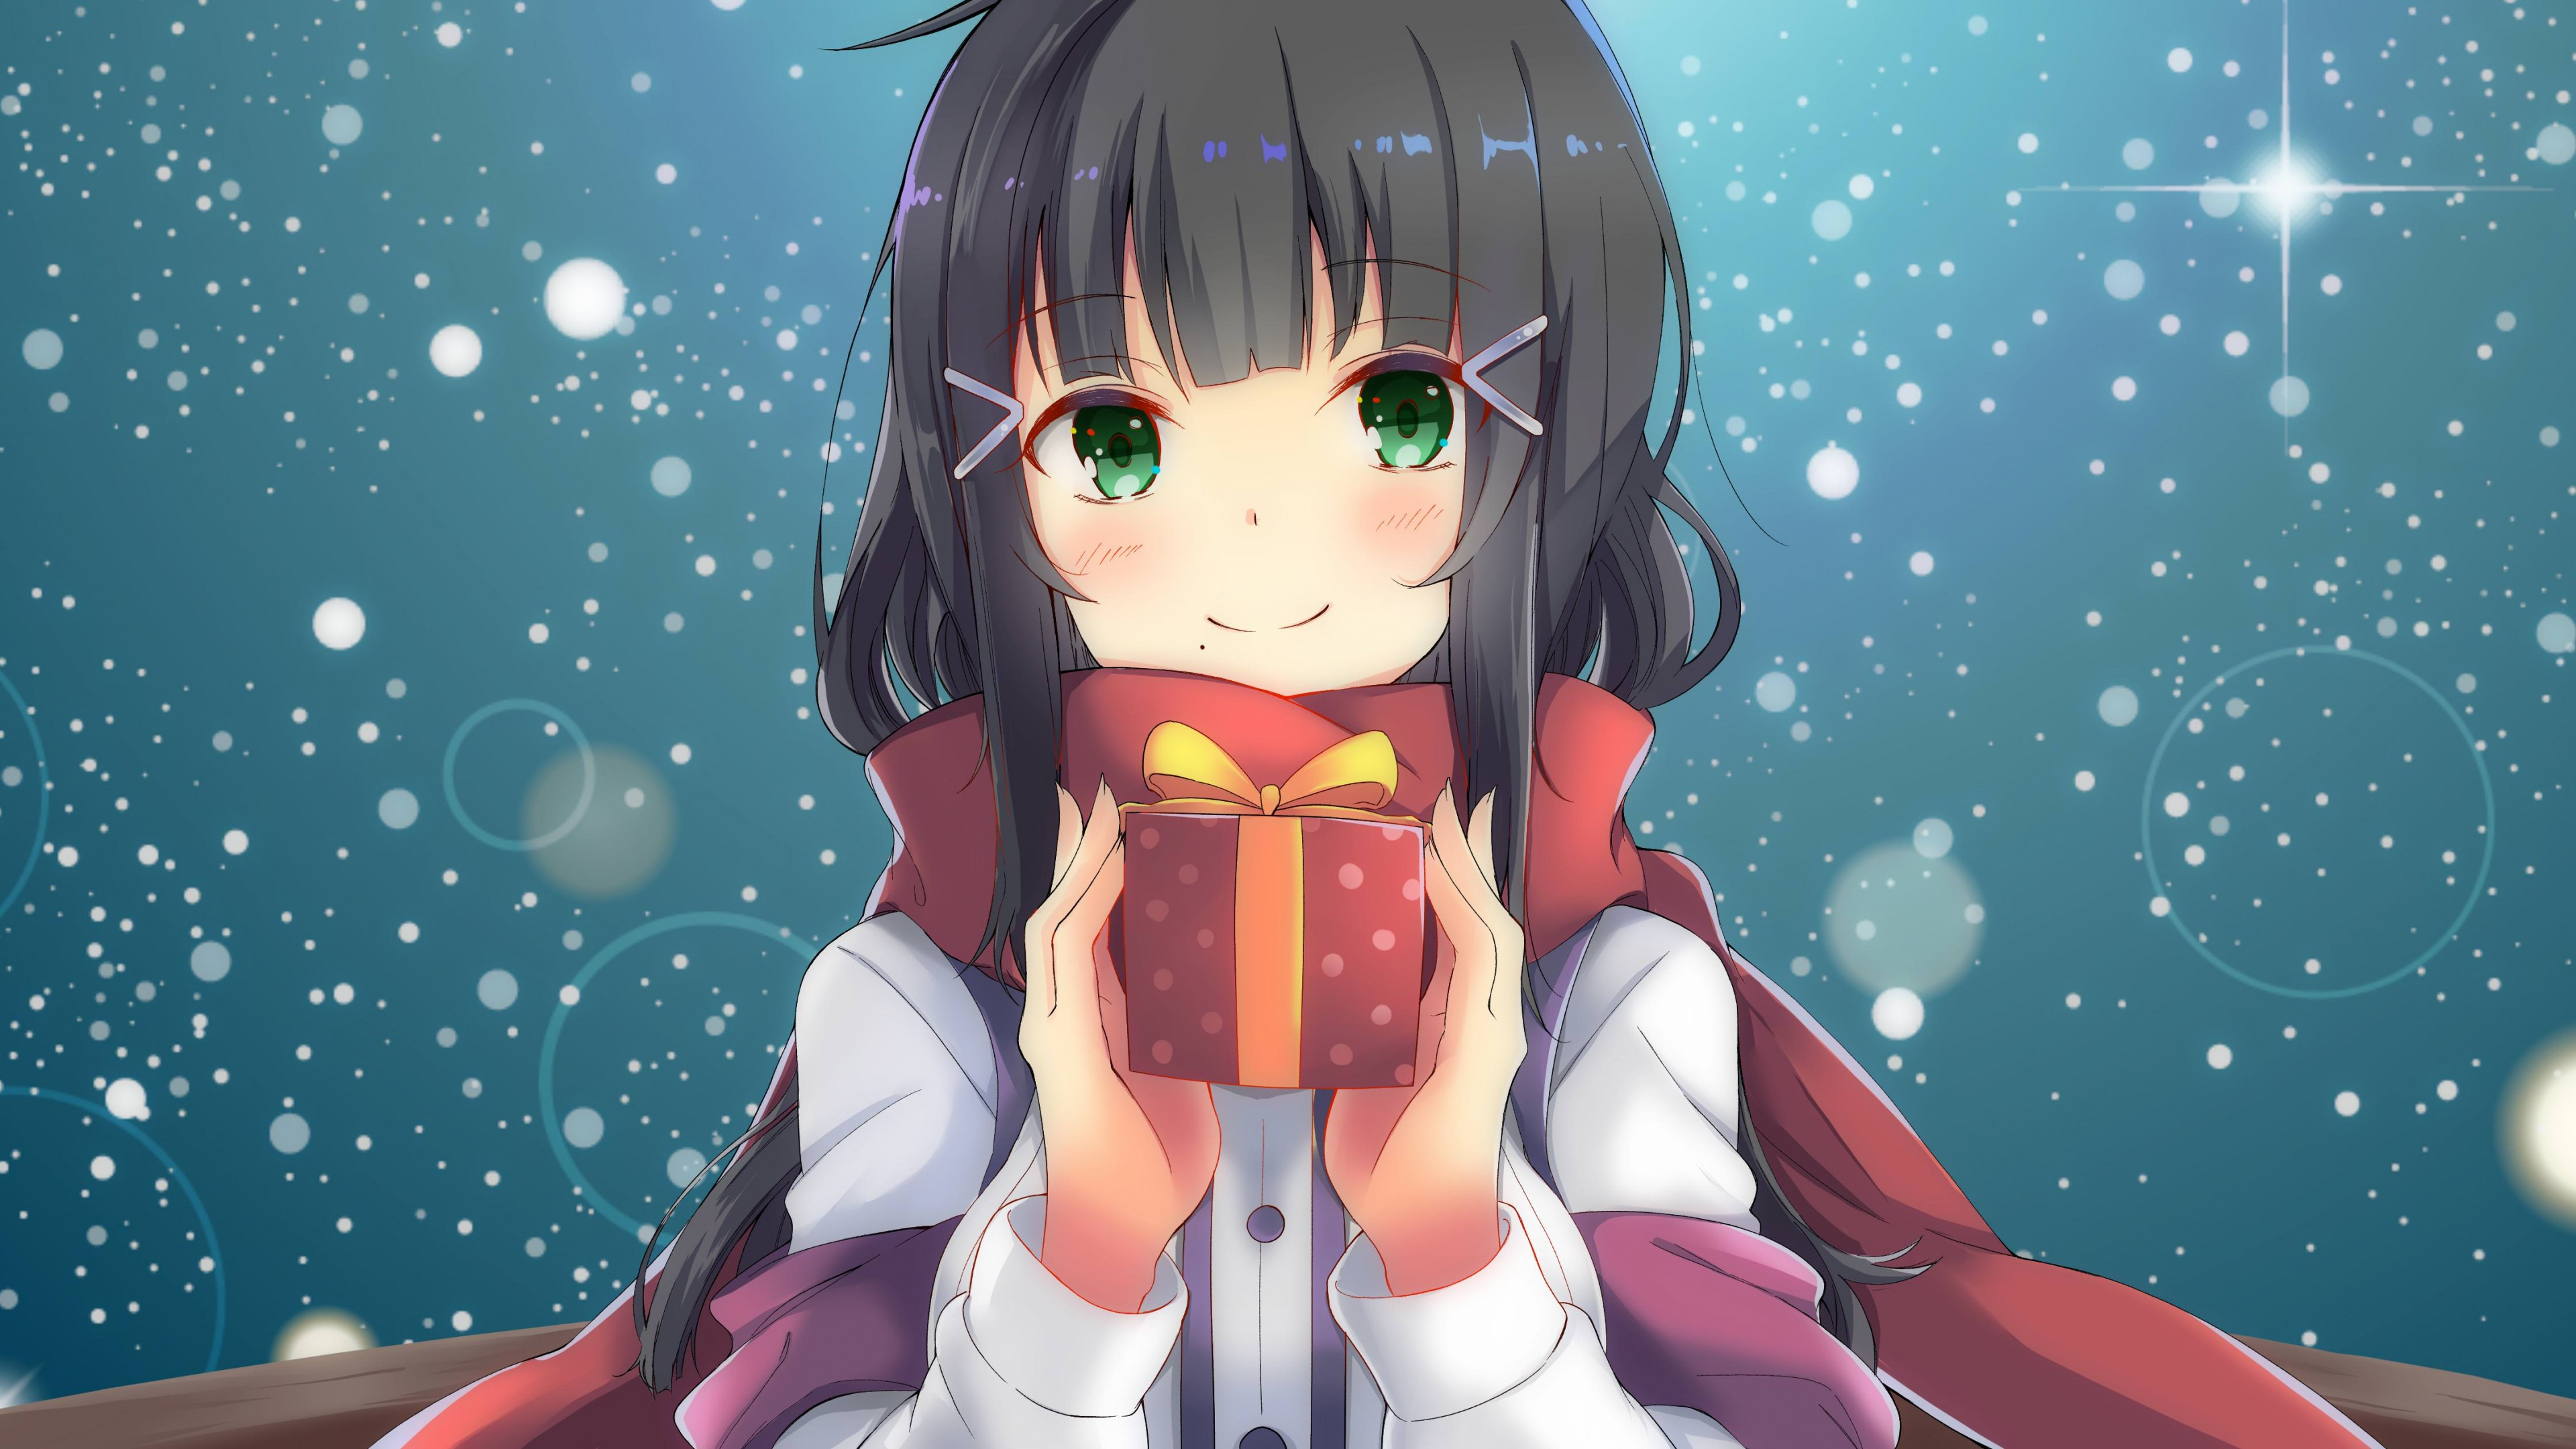 Wallpaper anime, girl, beauty, Christmas, New Year, 4k, Art #16924